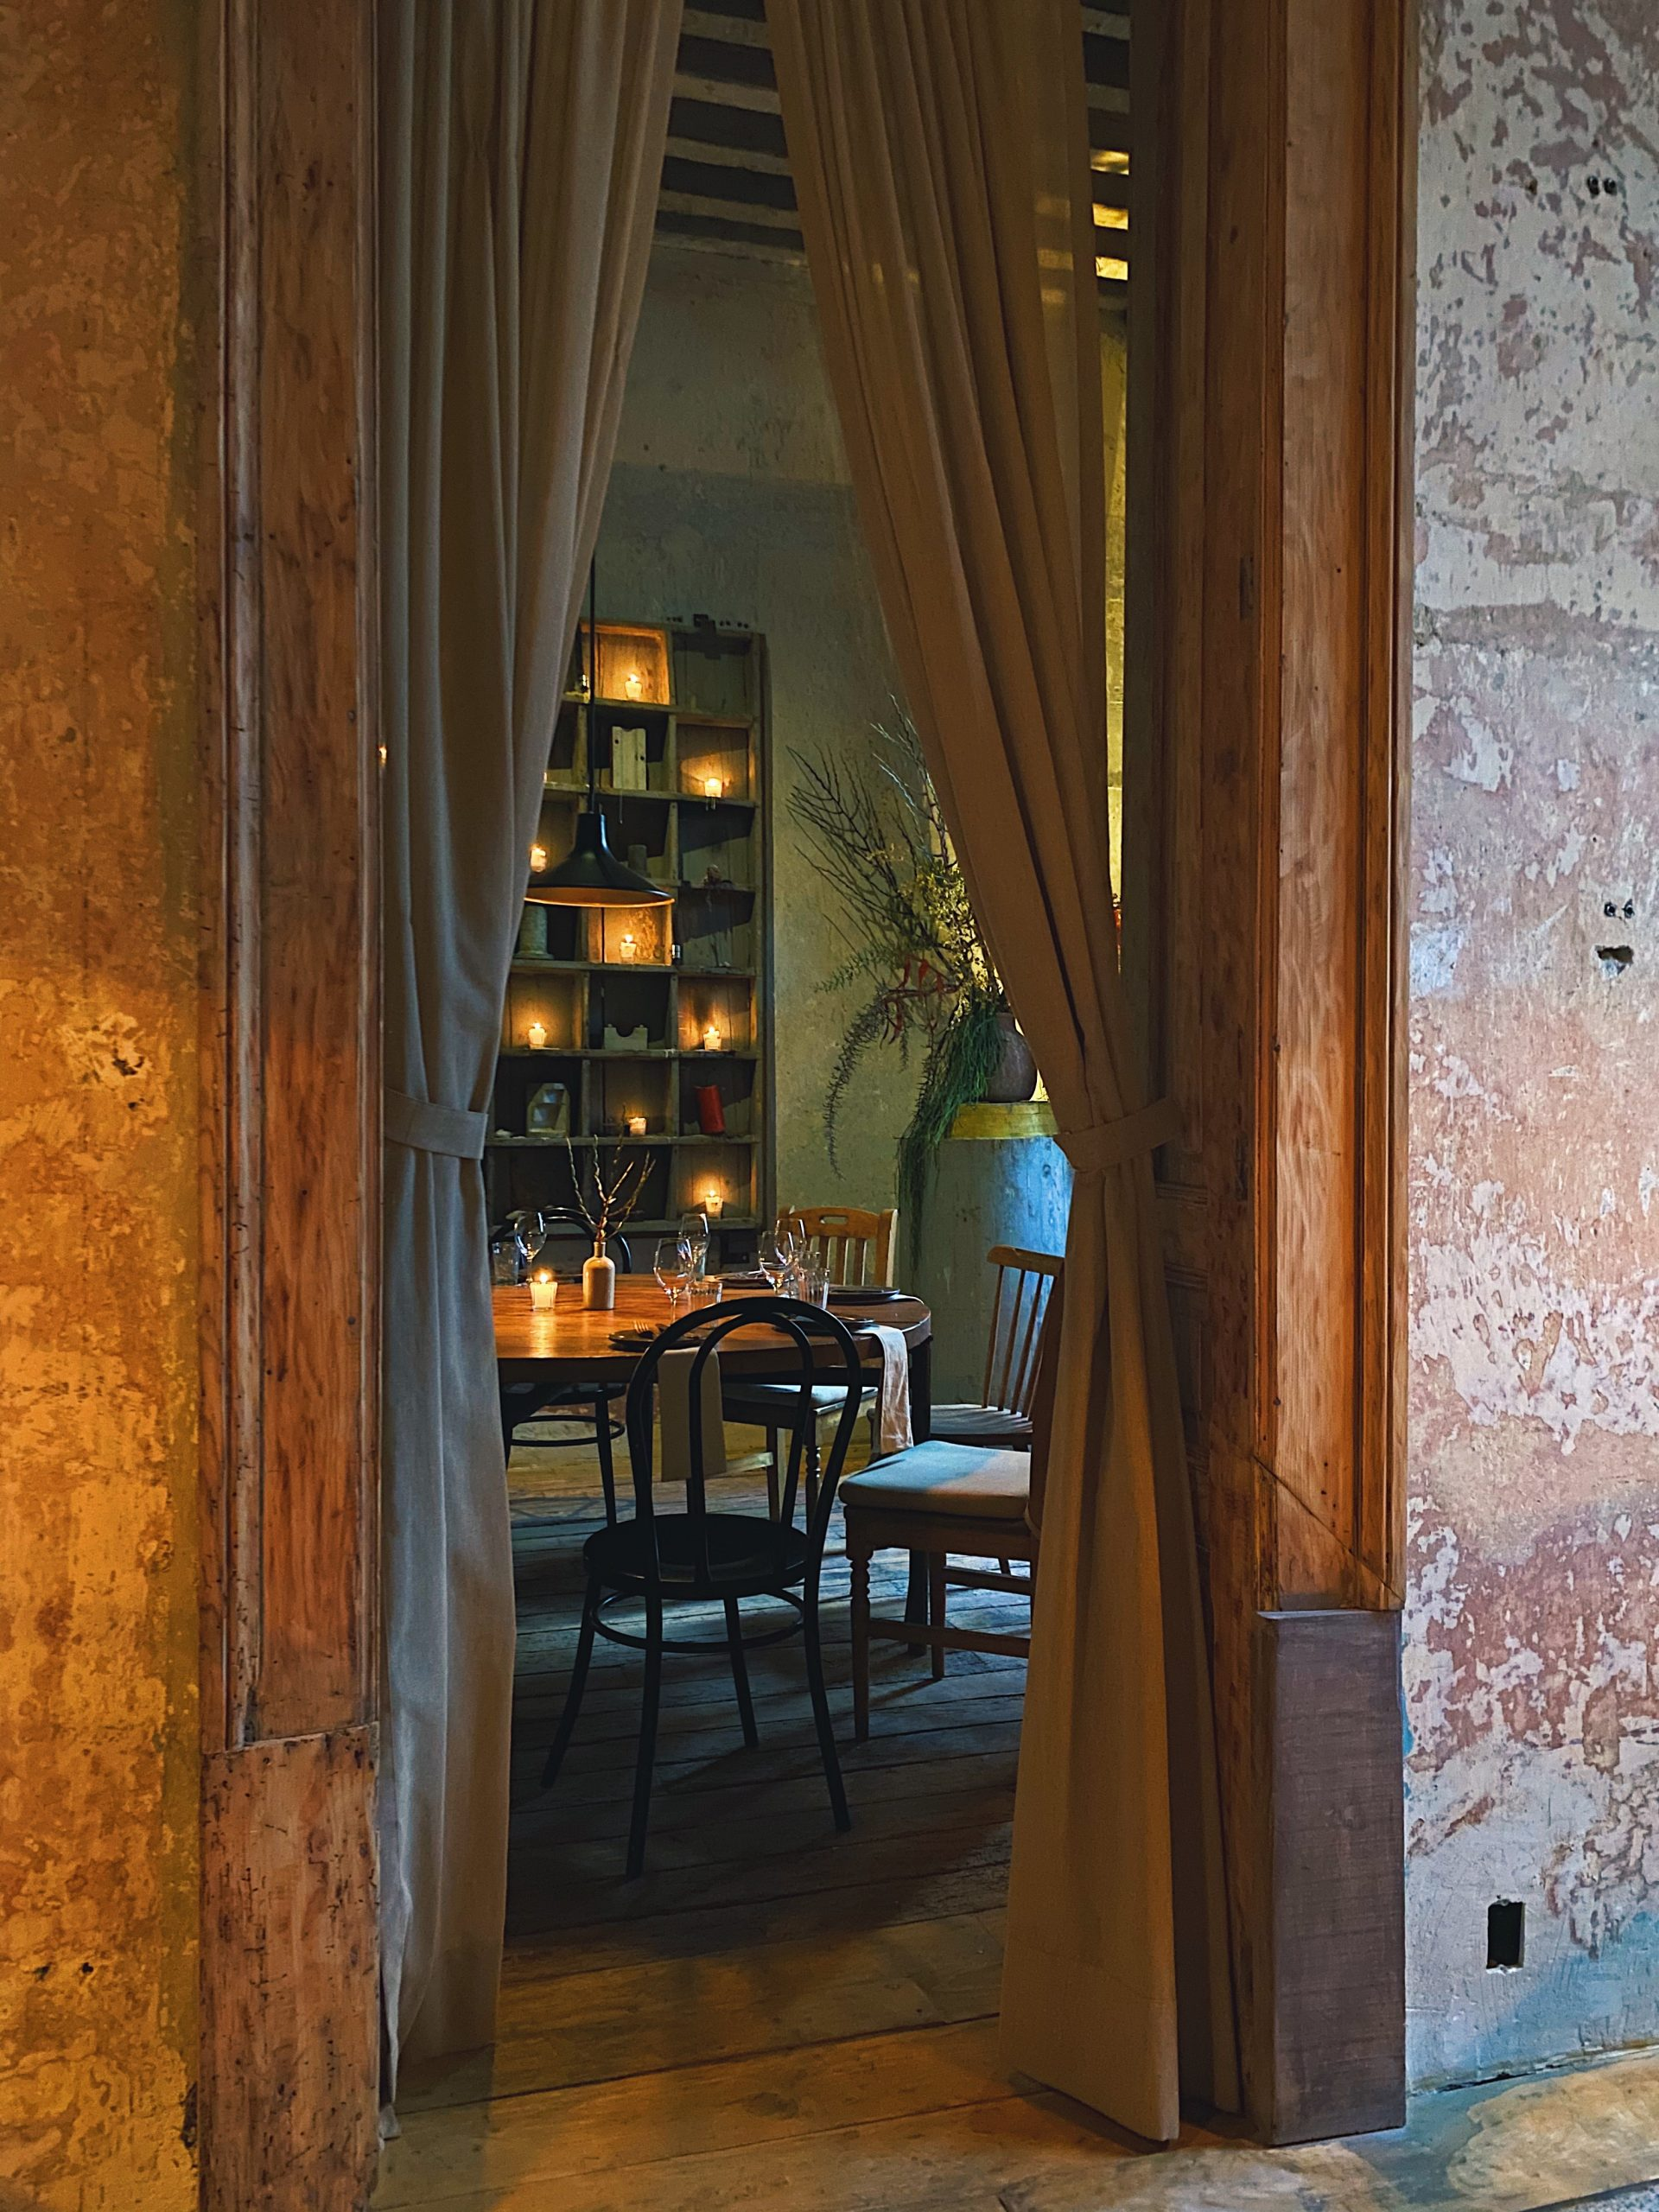 wu-haus-mexico-city-guide-food-taverna-cool-place